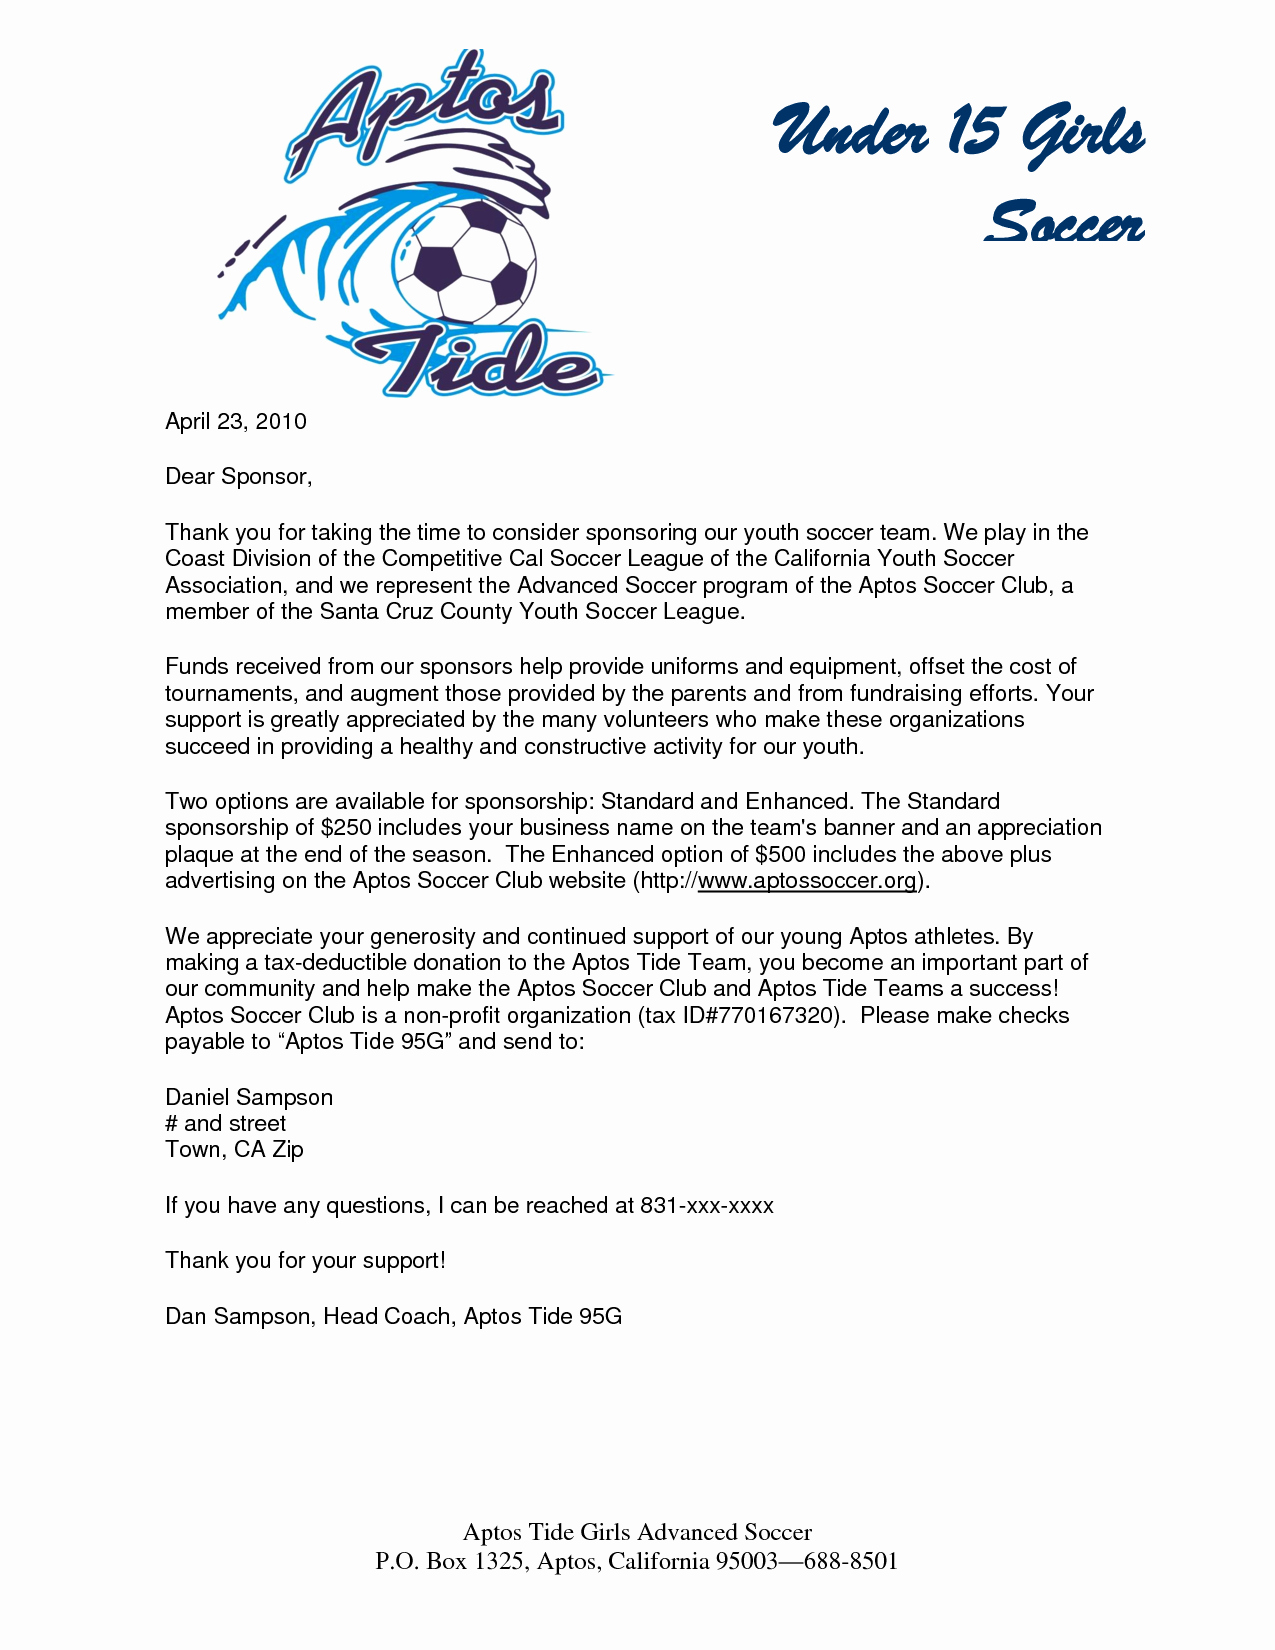 Sports Sponsorship Proposal Template Best Of Parent Thank You Letter From Youth athletes